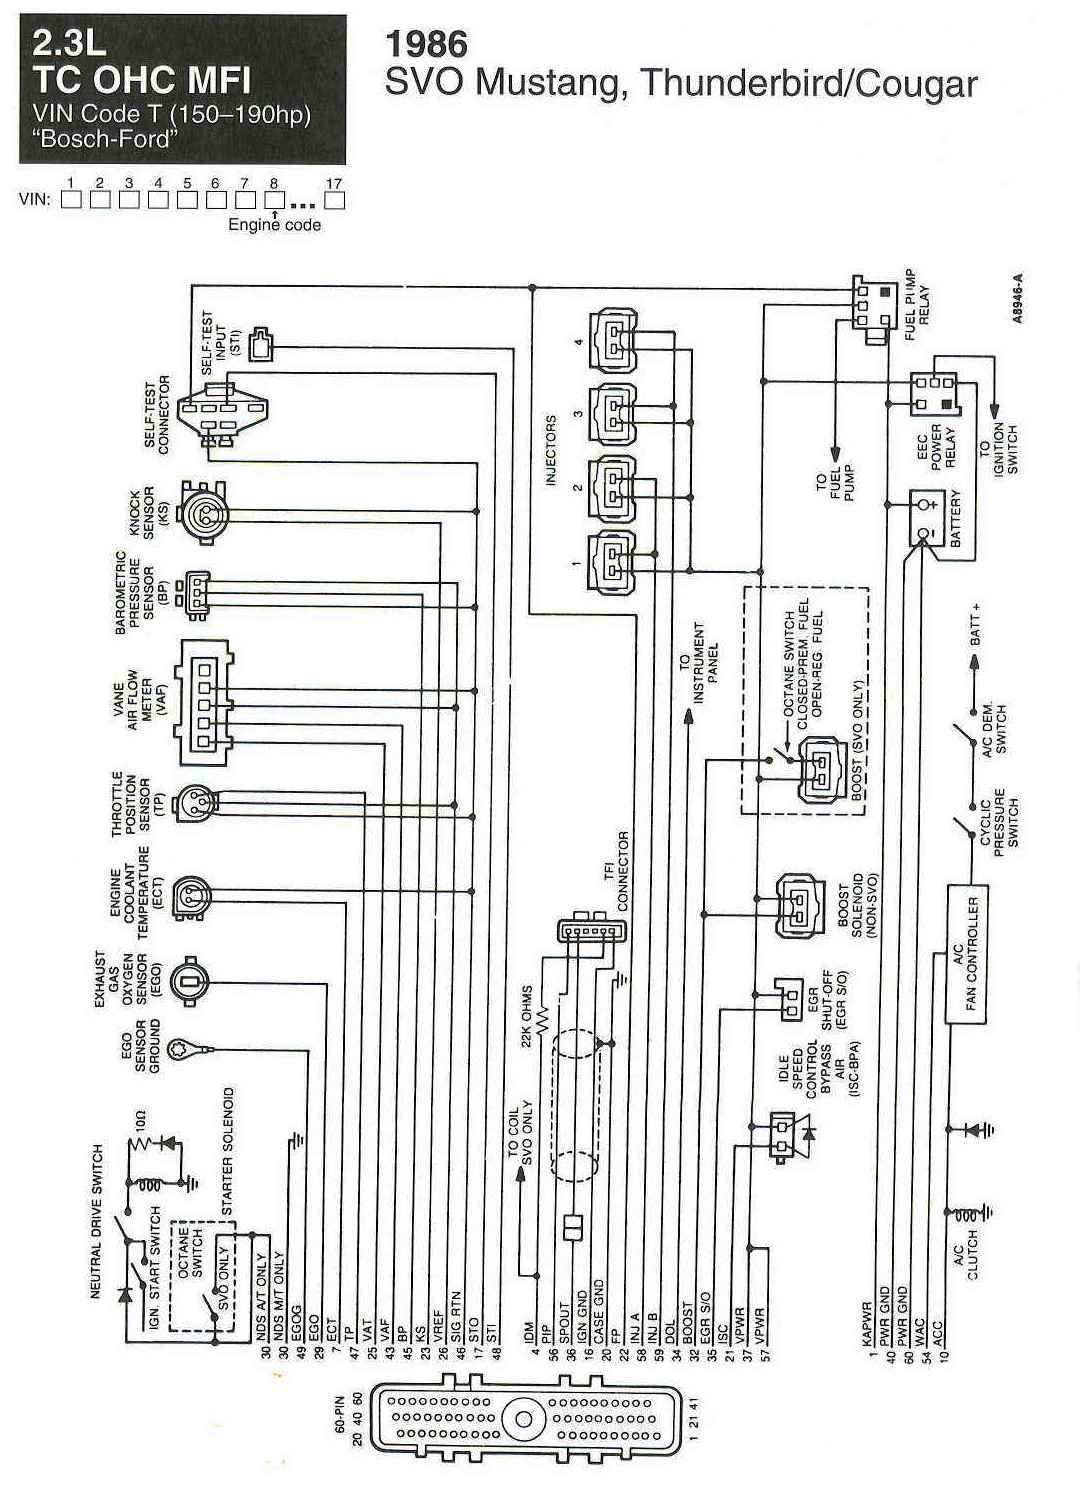 Gm Cruise Control Wiring Diagram